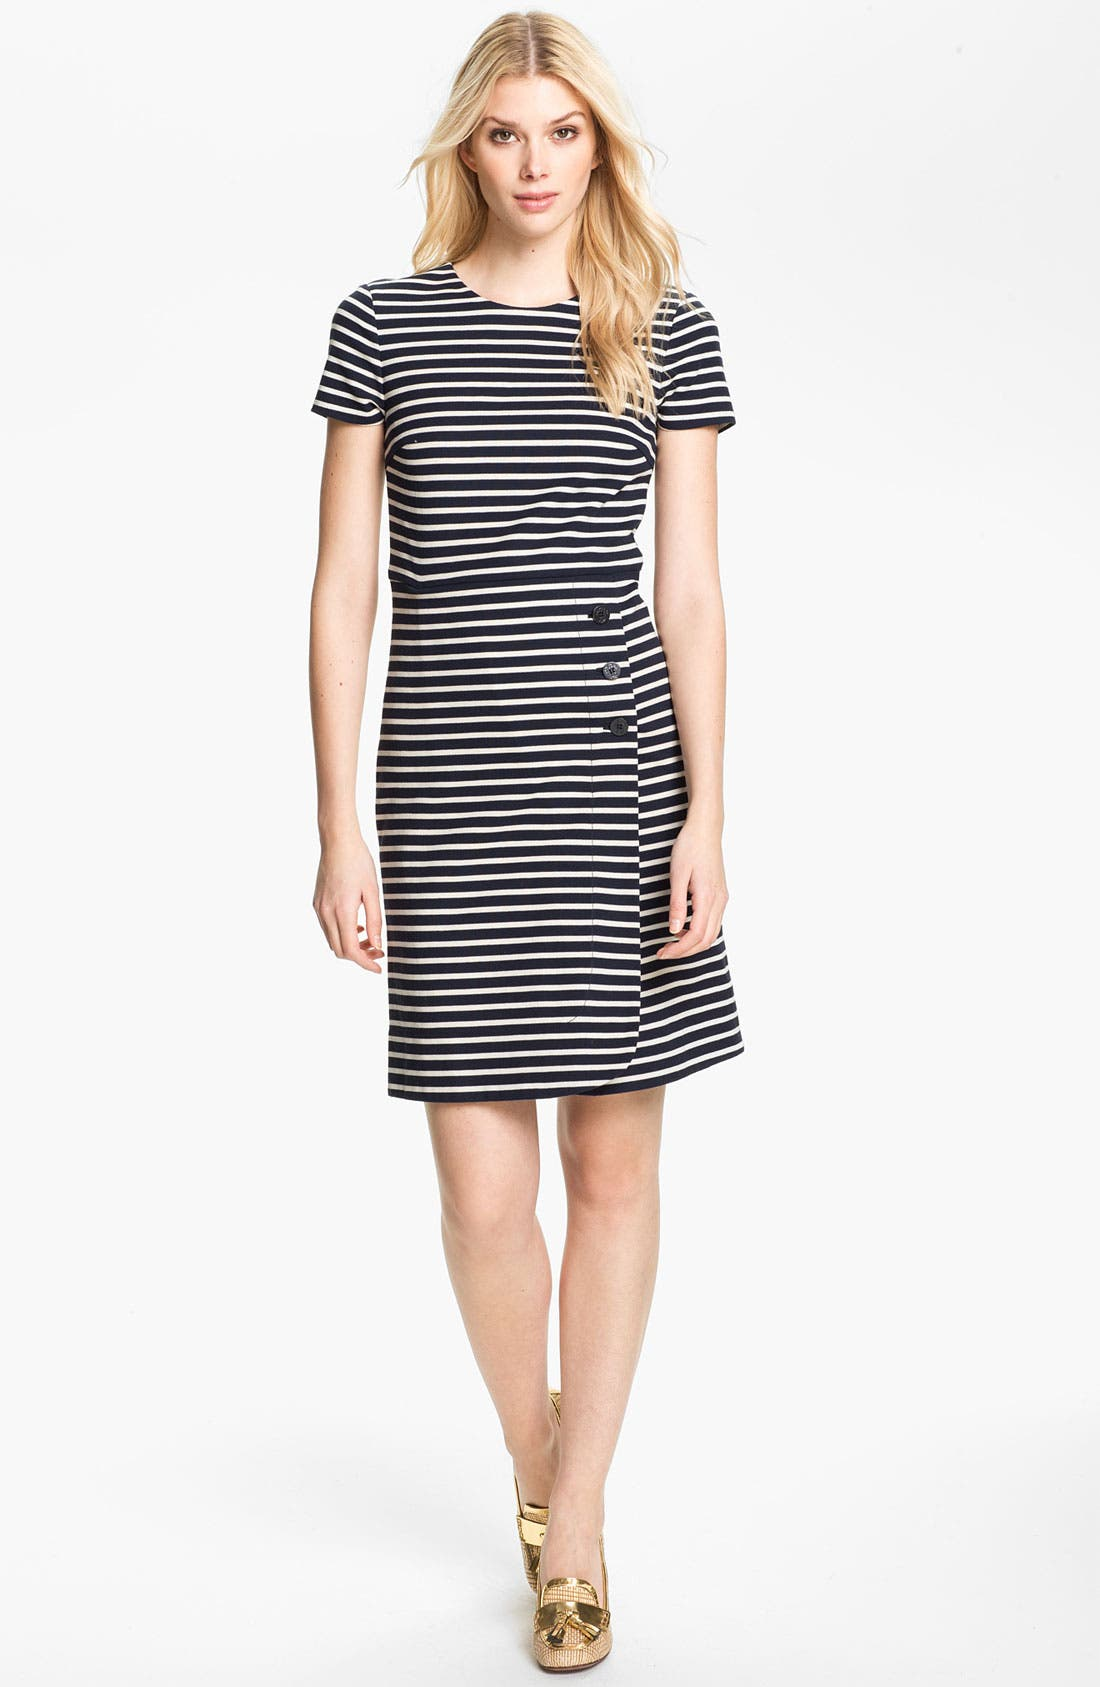 Alternate Image 1 Selected - Tory Burch 'Kamilla' Cotton Shift Dress